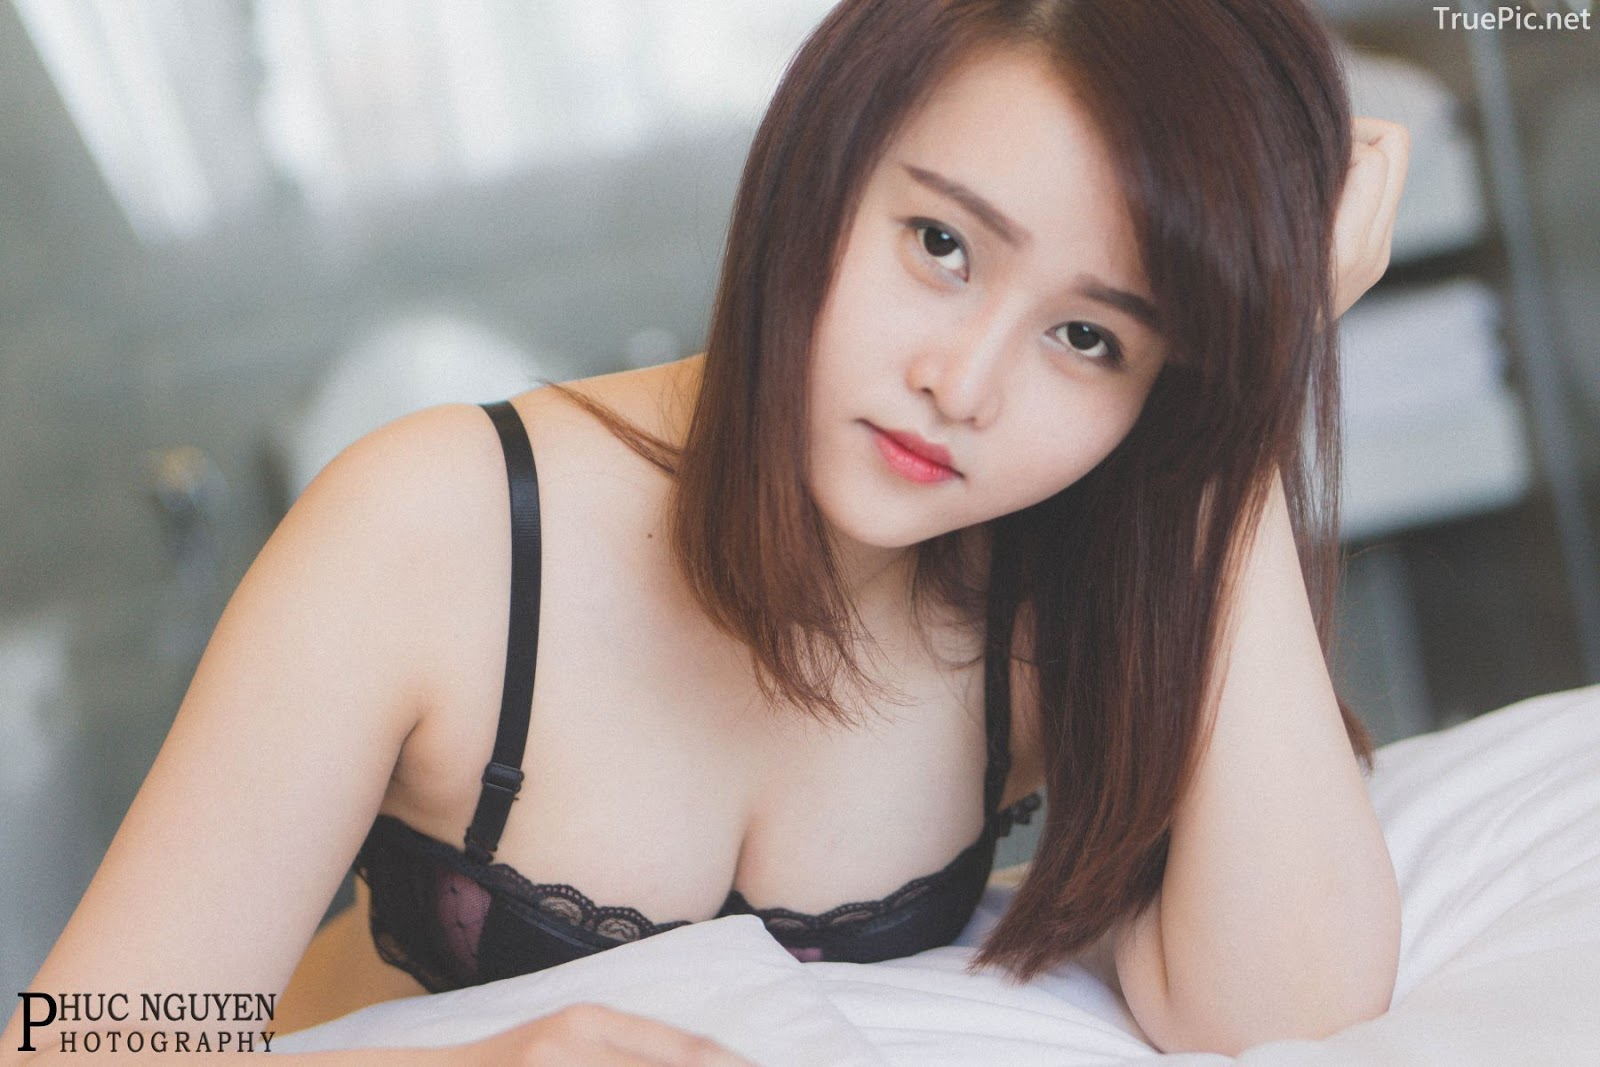 Super hot photos of Vietnamese beauties with lingerie and bikini - Photo by Le Blanc Studio - Part 5 - Picture 3